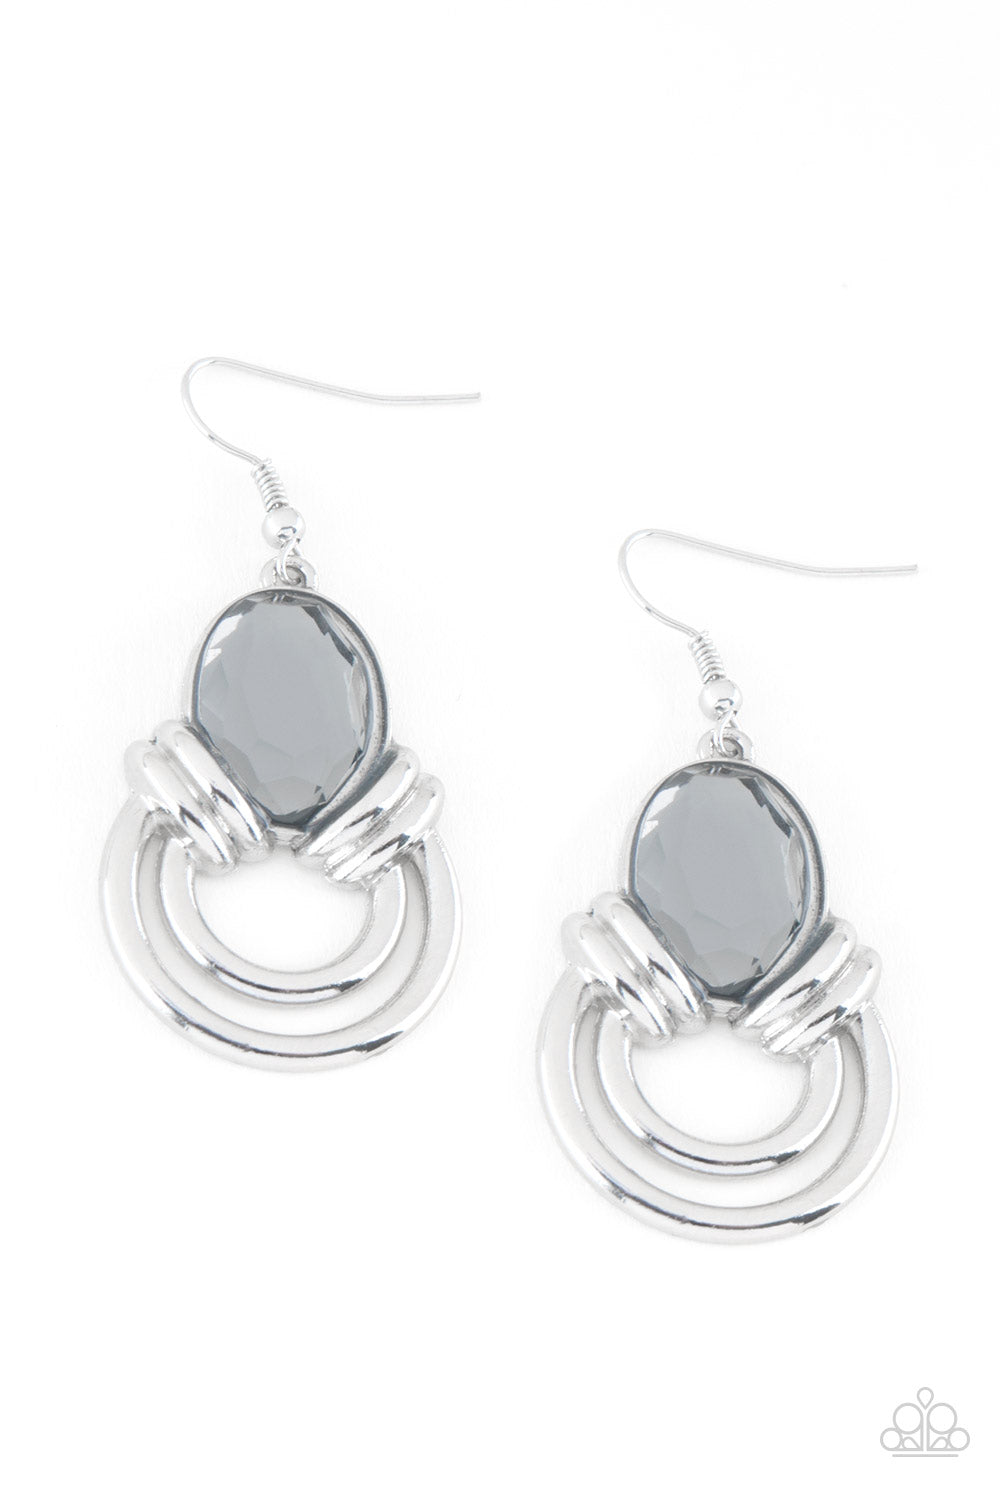 Paparazzi Accessories - Real Queen - Silver Earrings - JMJ Jewelry Collection